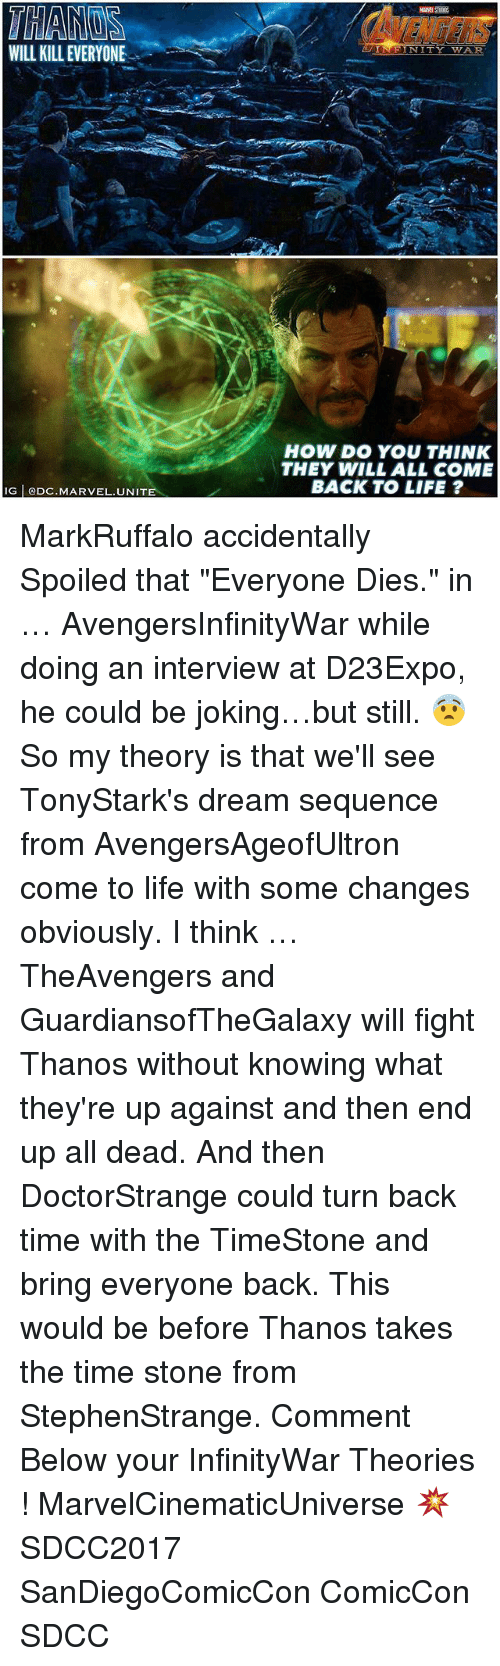 """stoning: WILL KILL EVERYONE  N I  HOW DO YOU THINK  THEY WILL ALL COME  BACK TO LIFE ?  G ODC.MARVEL.UNITE MarkRuffalo accidentally Spoiled that """"Everyone Dies."""" in … AvengersInfinityWar while doing an interview at D23Expo, he could be joking…but still. 😨 So my theory is that we'll see TonyStark's dream sequence from AvengersAgeofUltron come to life with some changes obviously. I think … TheAvengers and GuardiansofTheGalaxy will fight Thanos without knowing what they're up against and then end up all dead. And then DoctorStrange could turn back time with the TimeStone and bring everyone back. This would be before Thanos takes the time stone from StephenStrange. Comment Below your InfinityWar Theories ! MarvelCinematicUniverse 💥 SDCC2017 SanDiegoComicCon ComicCon SDCC"""